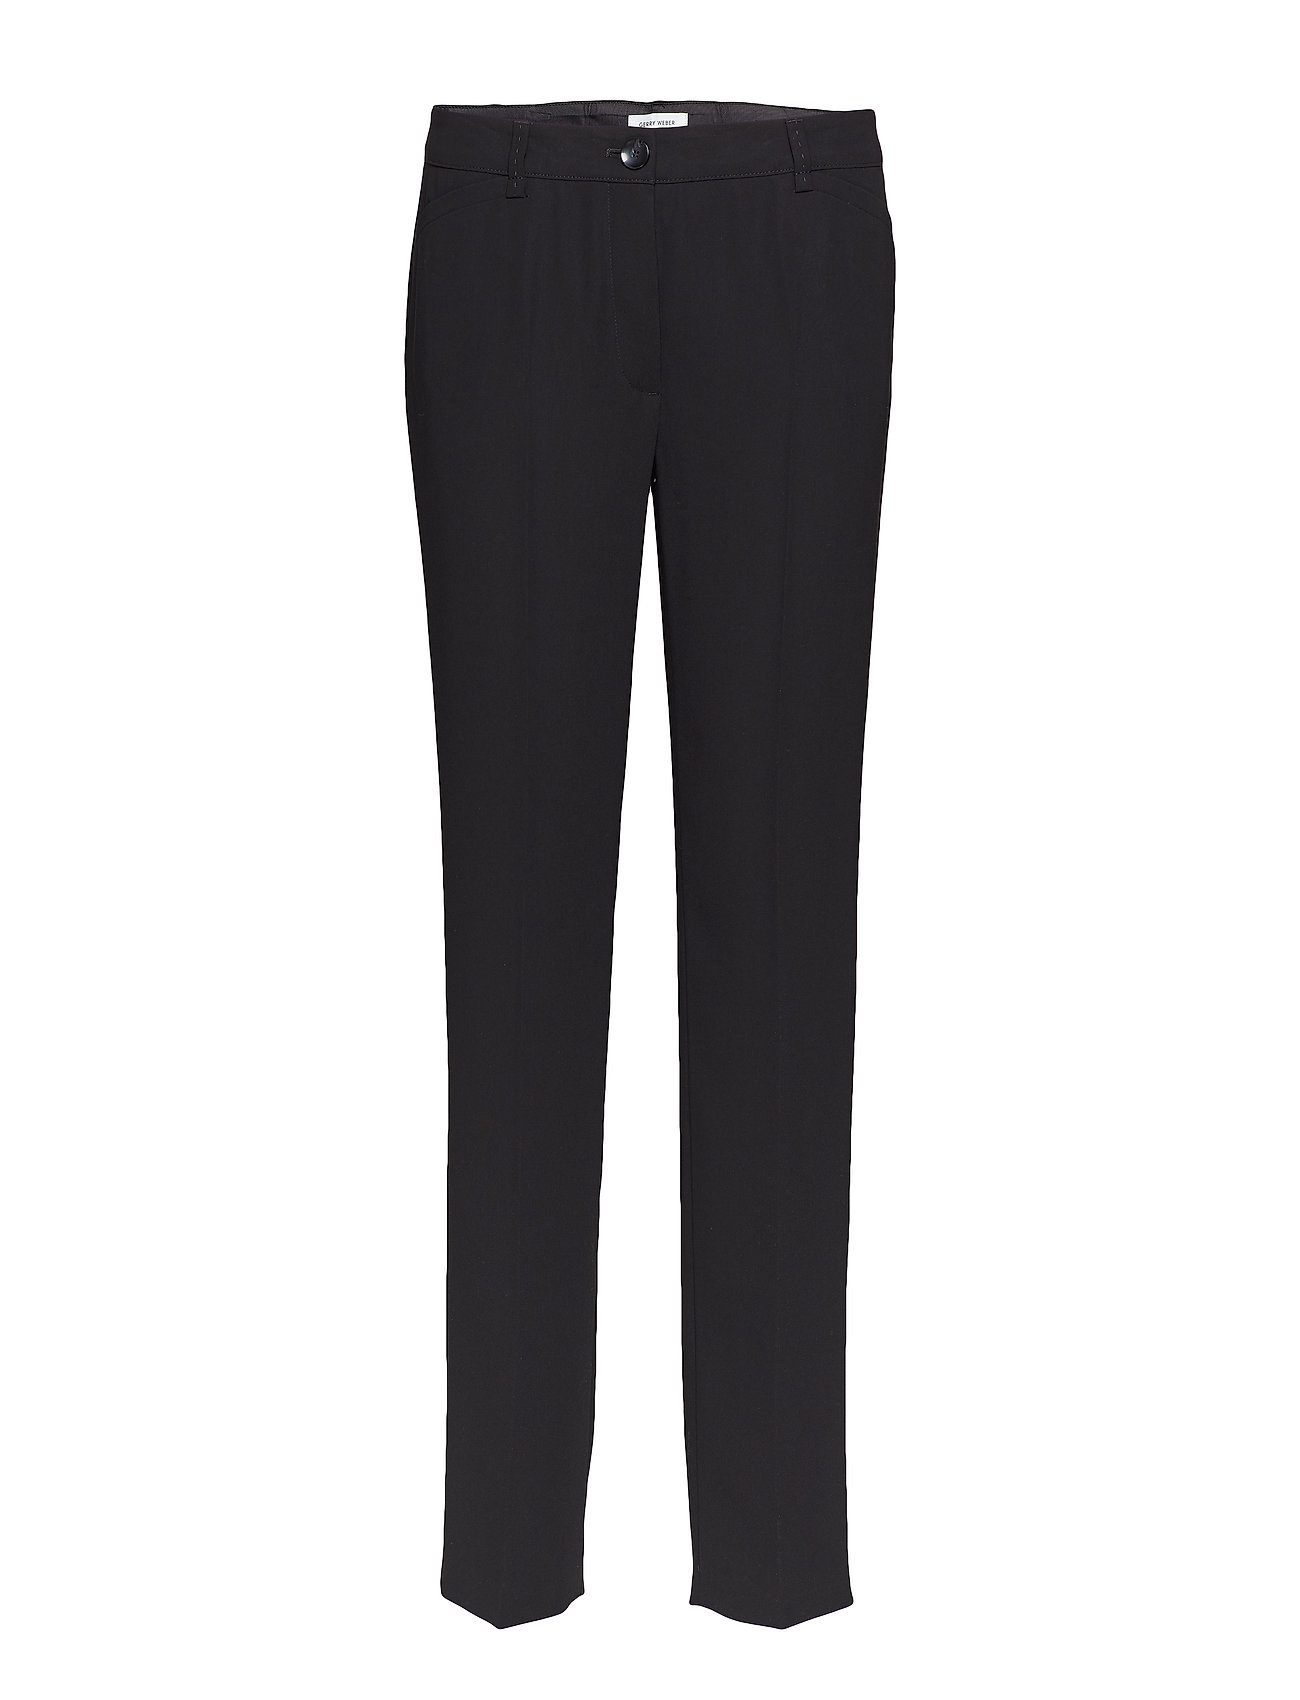 Gerry Weber TROUSERS CLOTH SPECI - BLACK